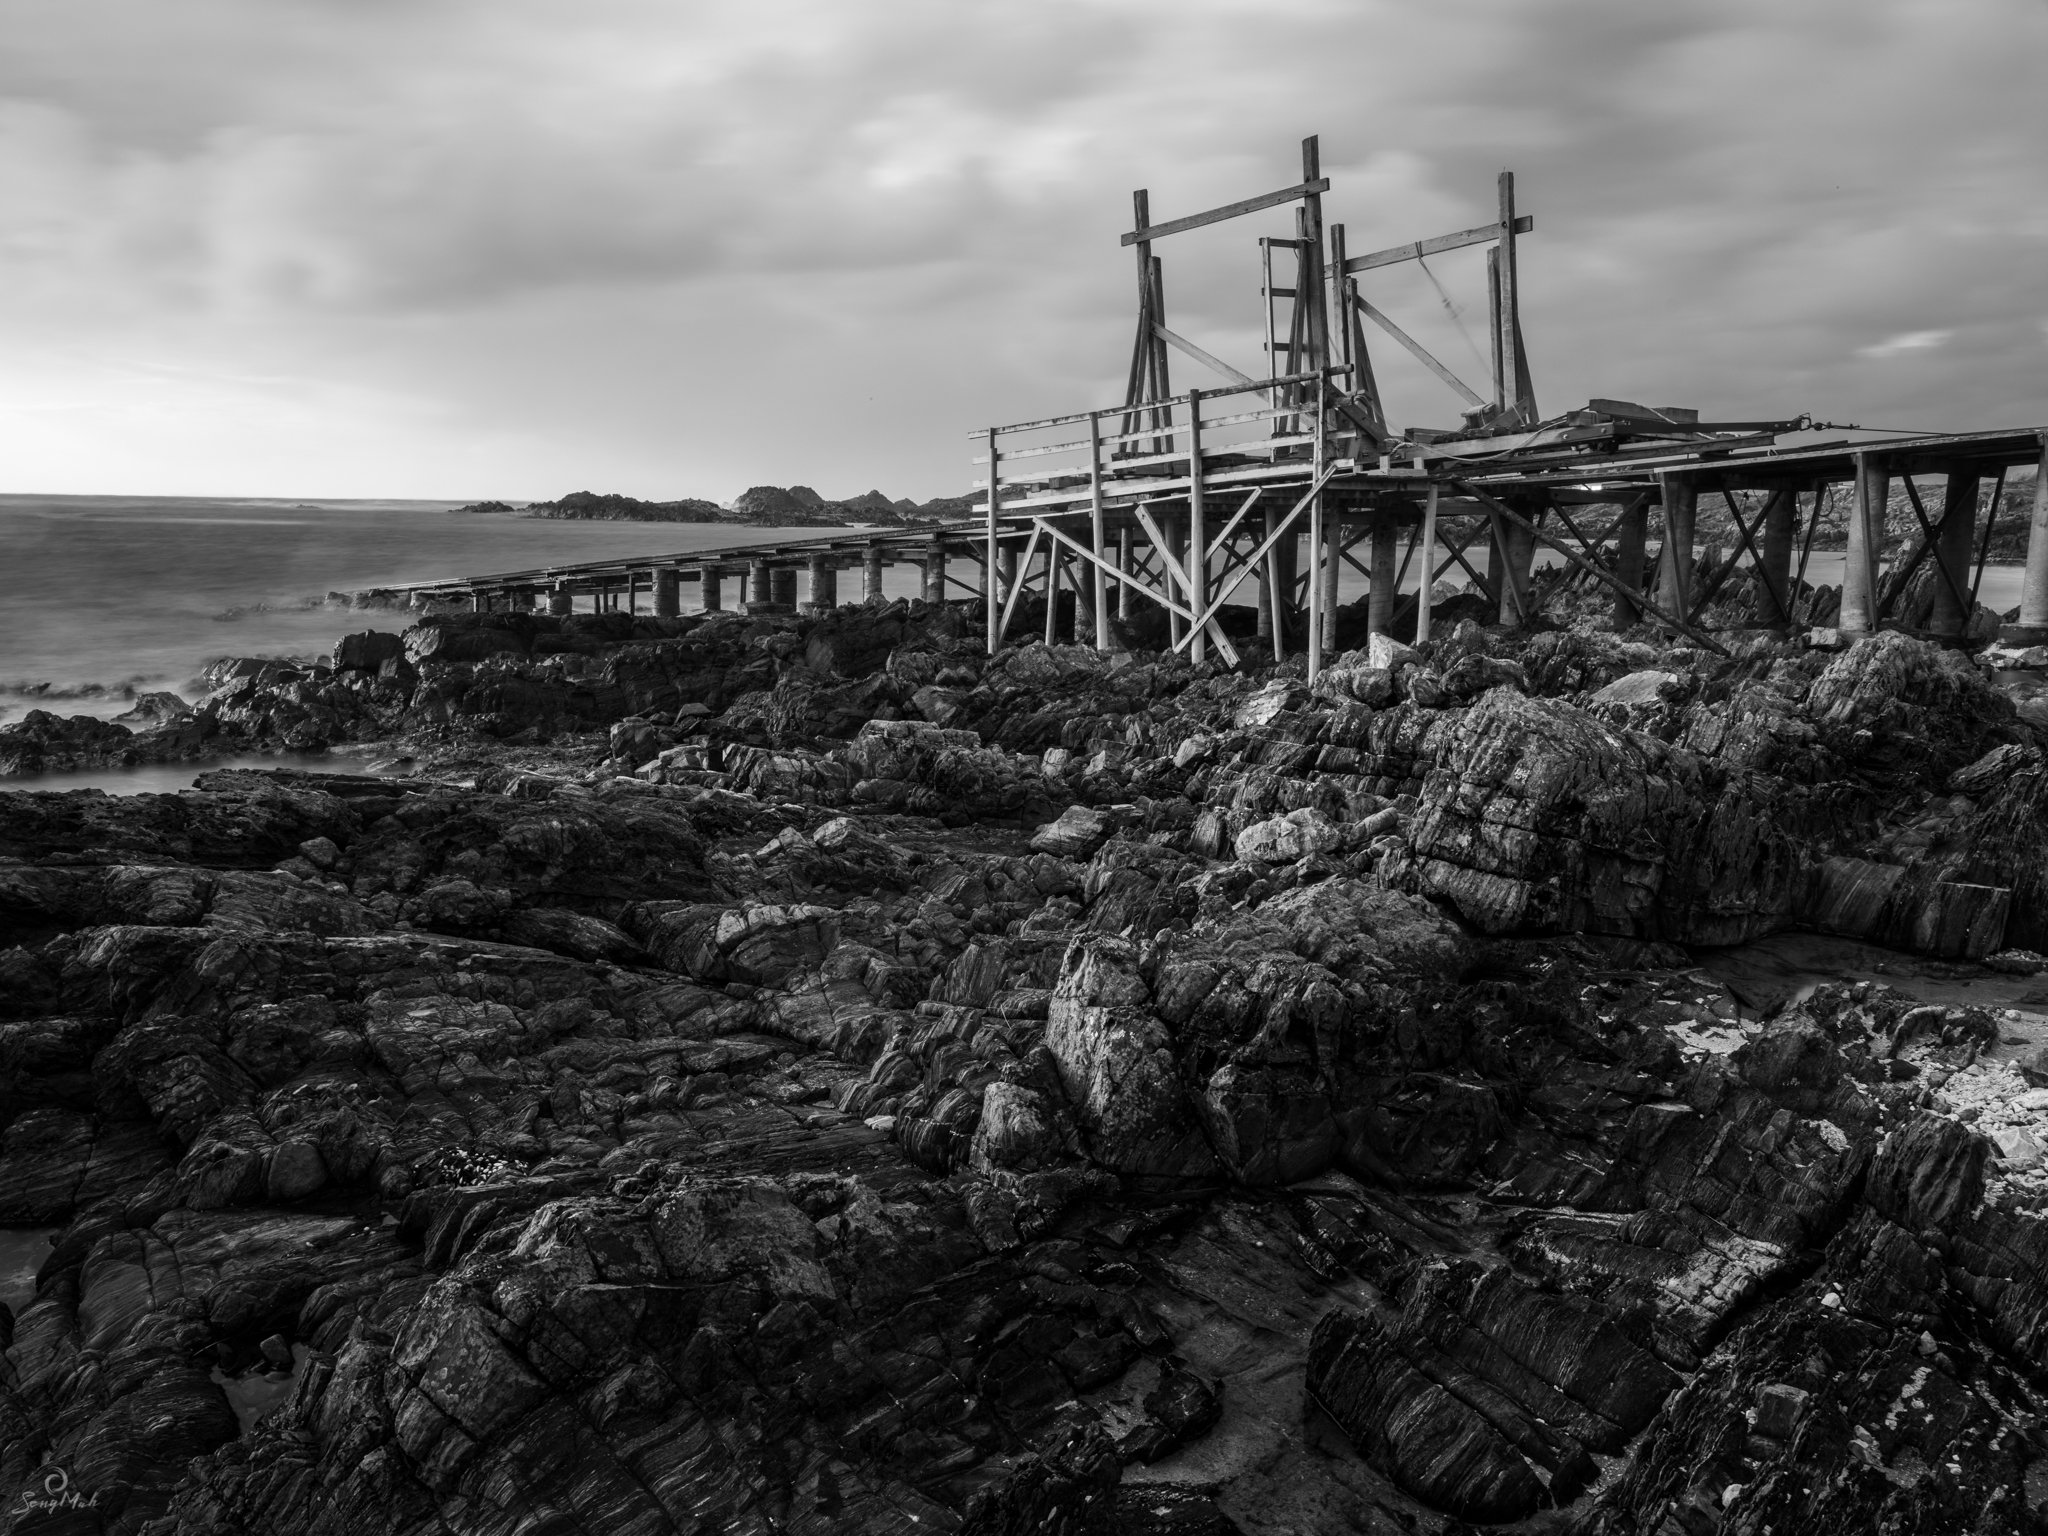 Black and White image of boat ramp on coast